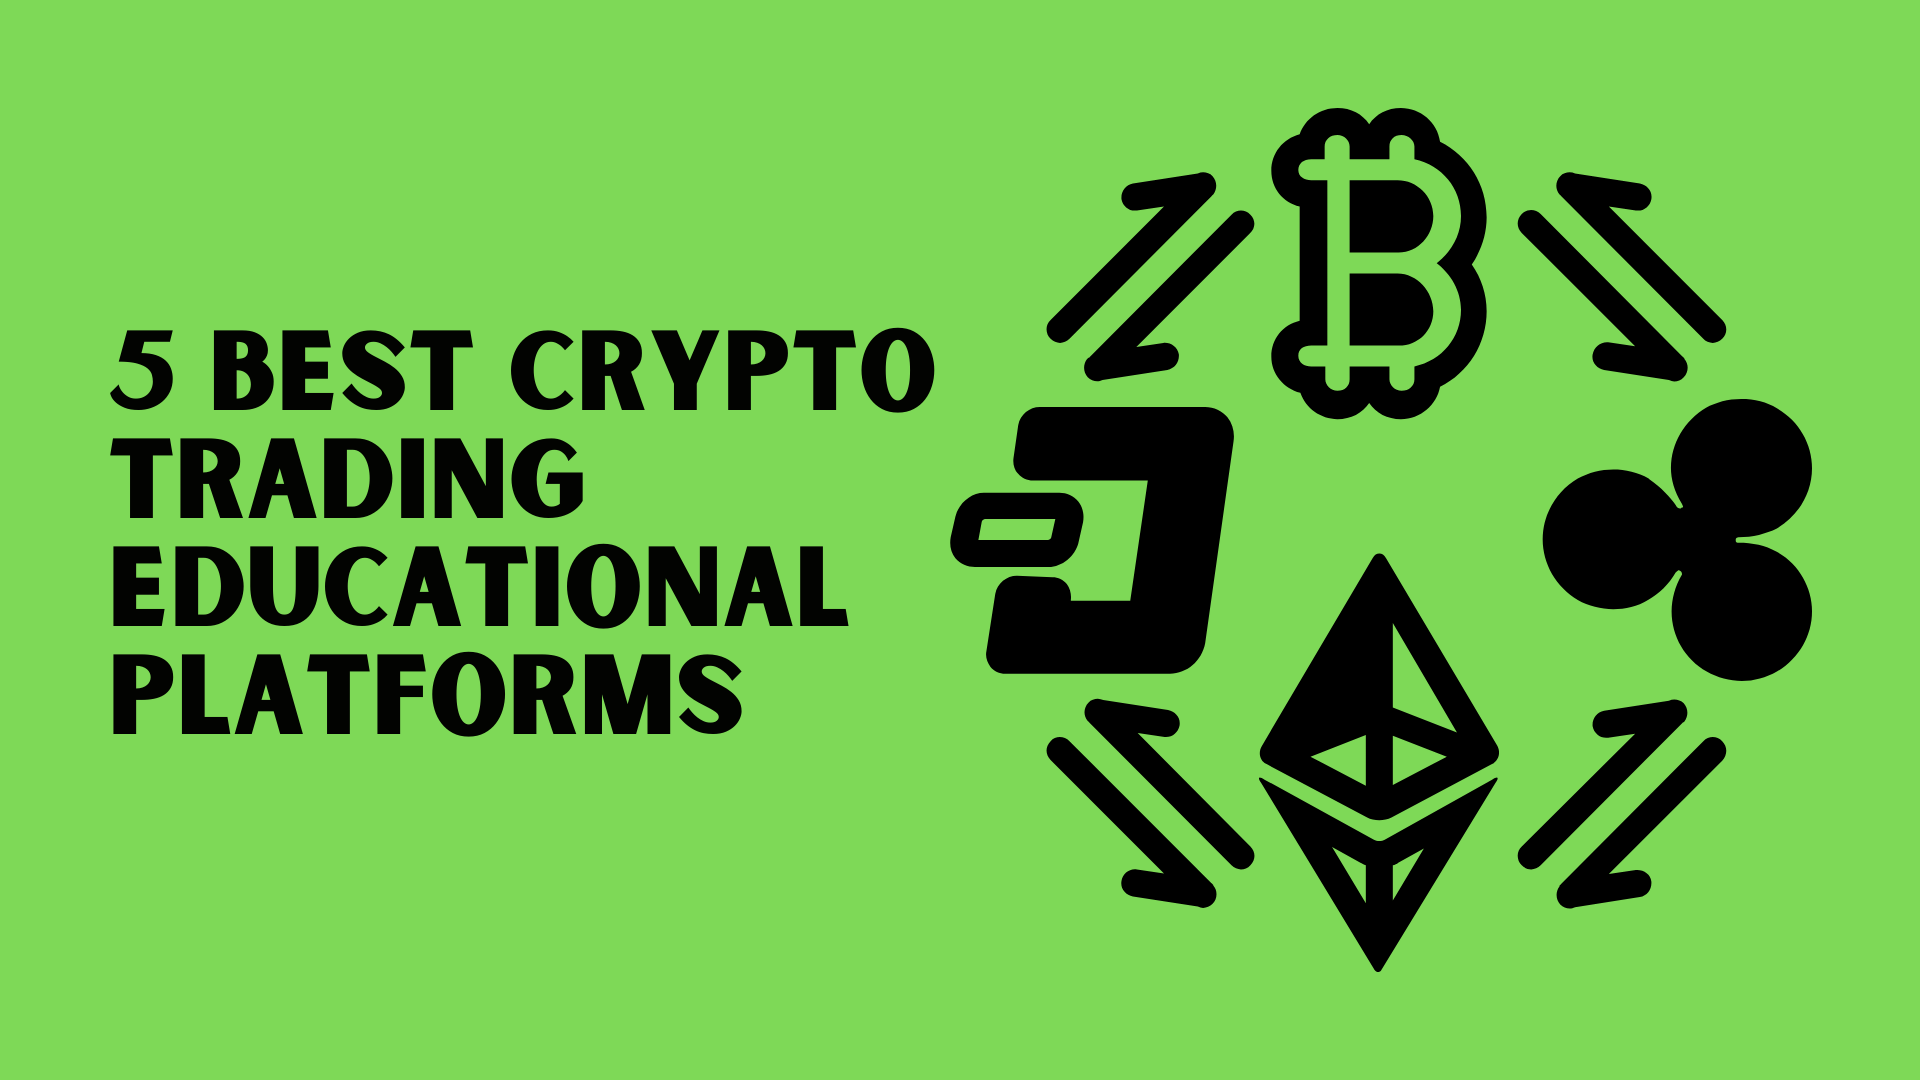 5 best crypto trading educational platforms